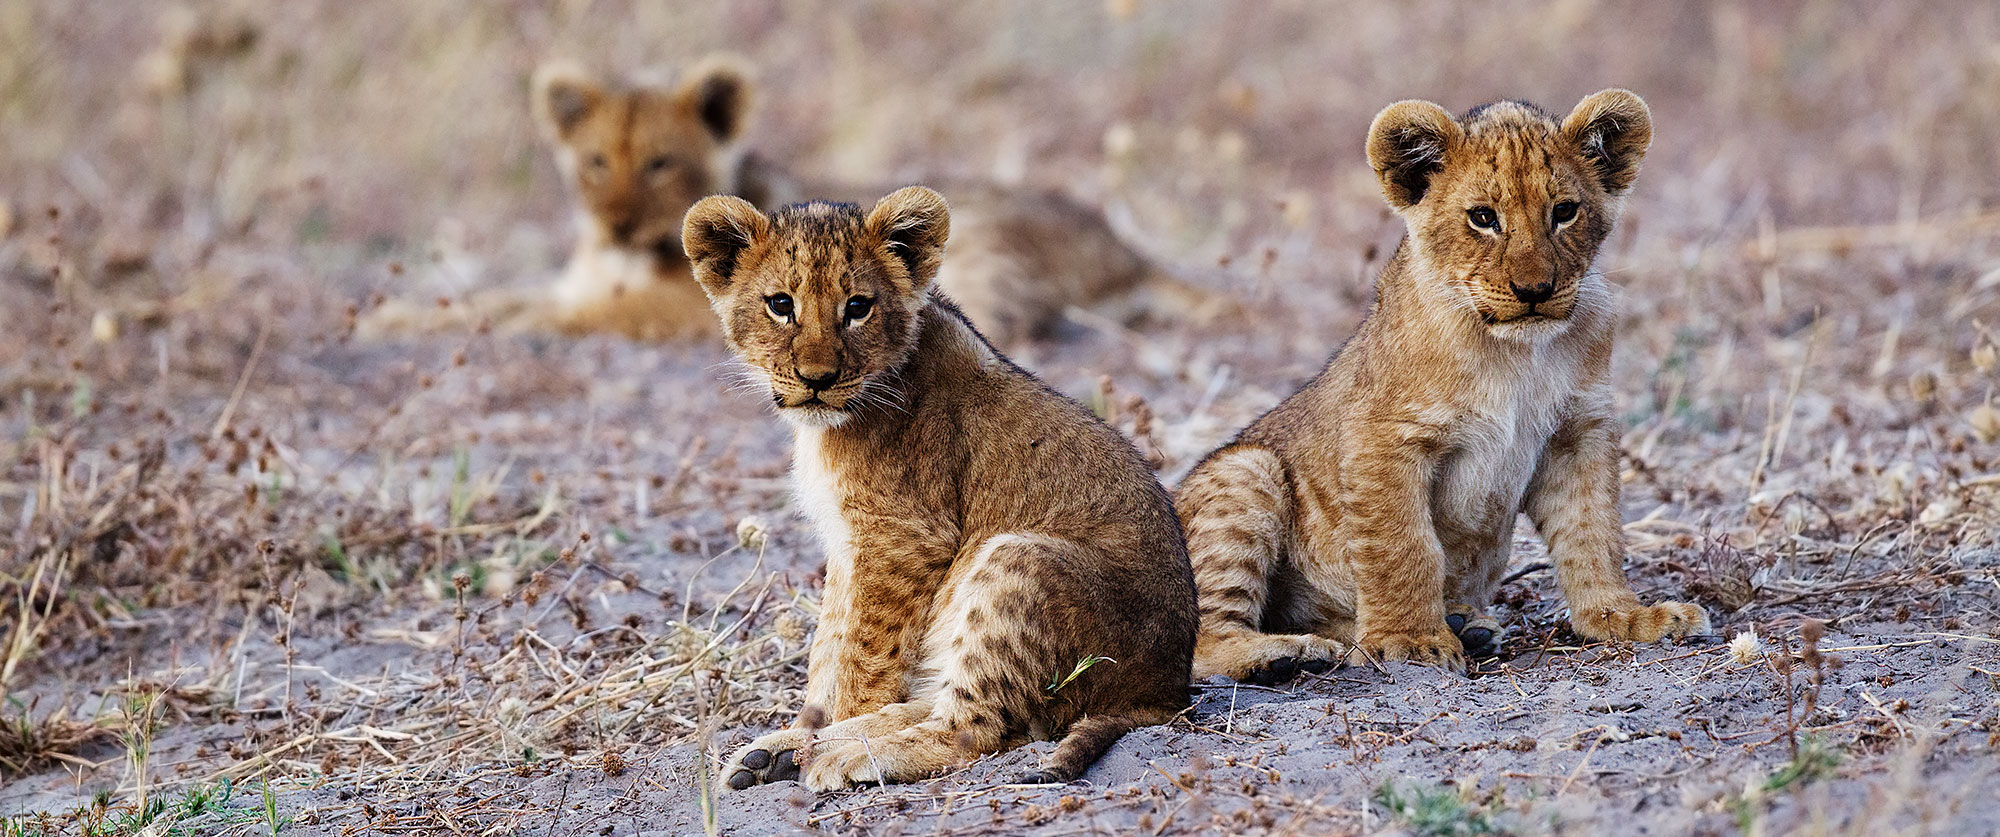 Bucket List Botswana Safari: Chobe and Okavango Delta - Lion Cubs in Savute Region of Chobe National Park